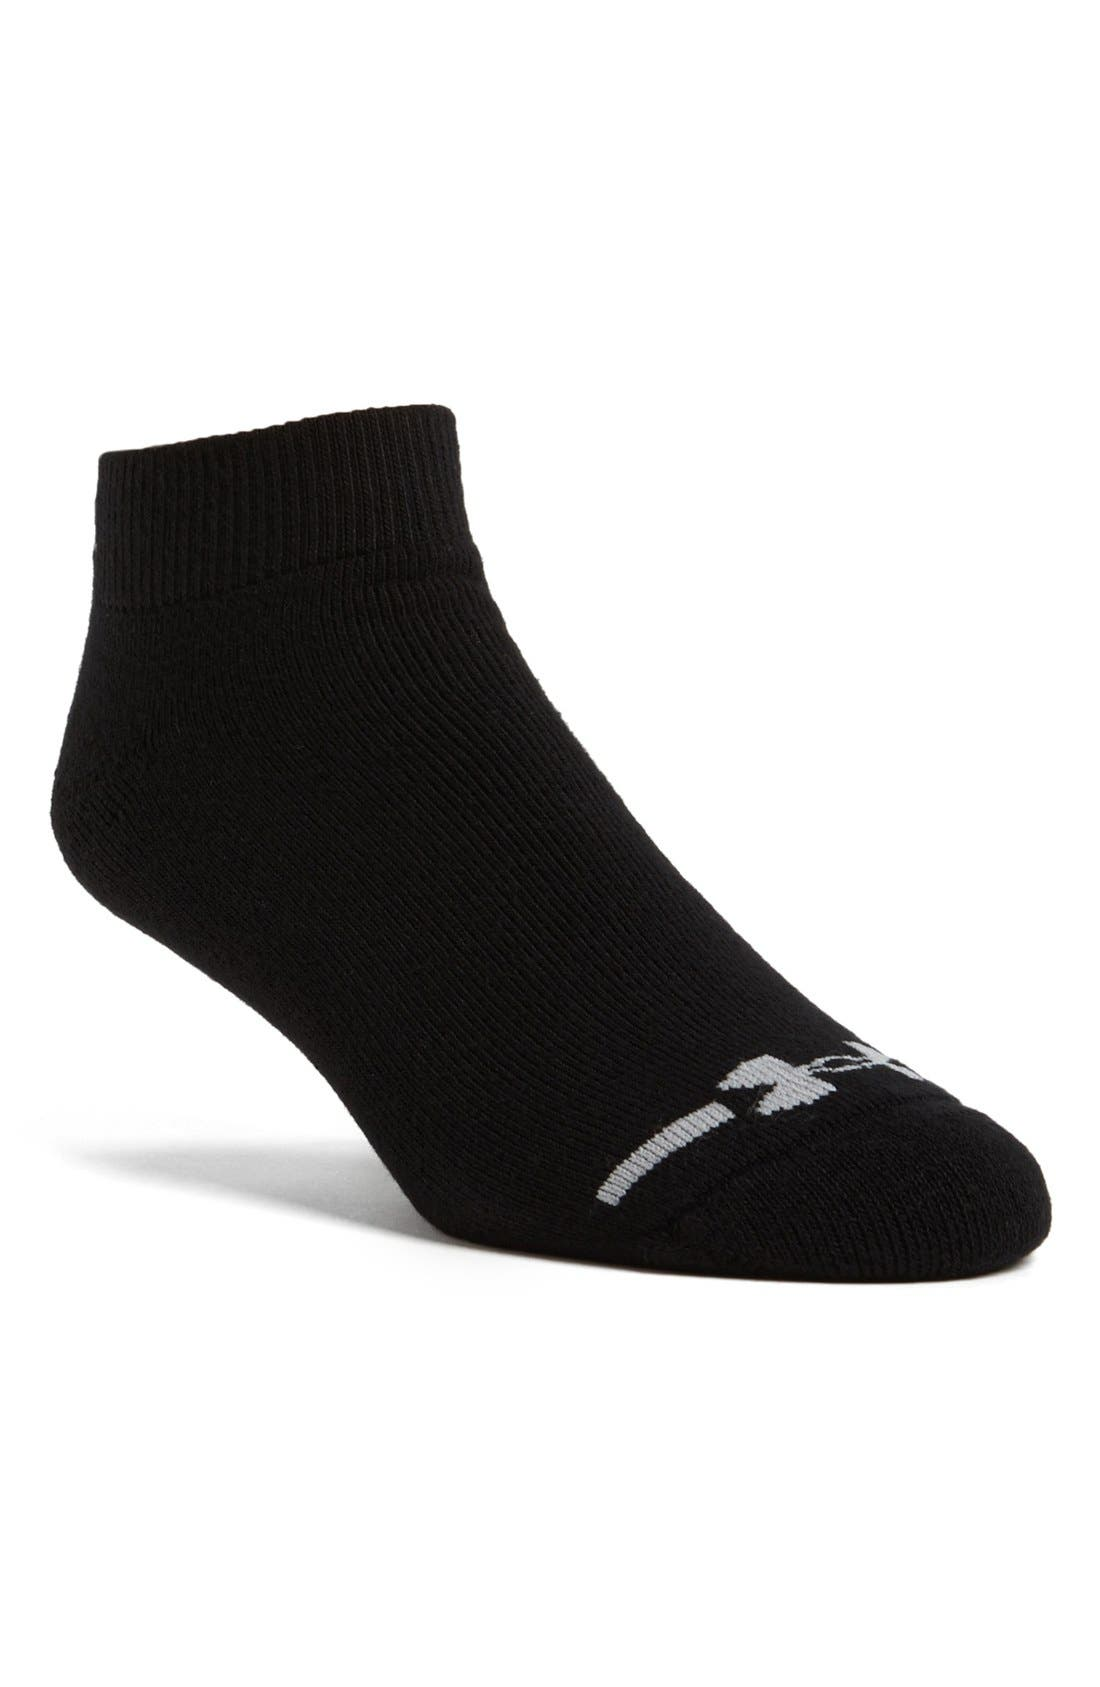 Alternate Image 1 Selected - Under Armour 'Charged' No Show Socks (6-Pack)